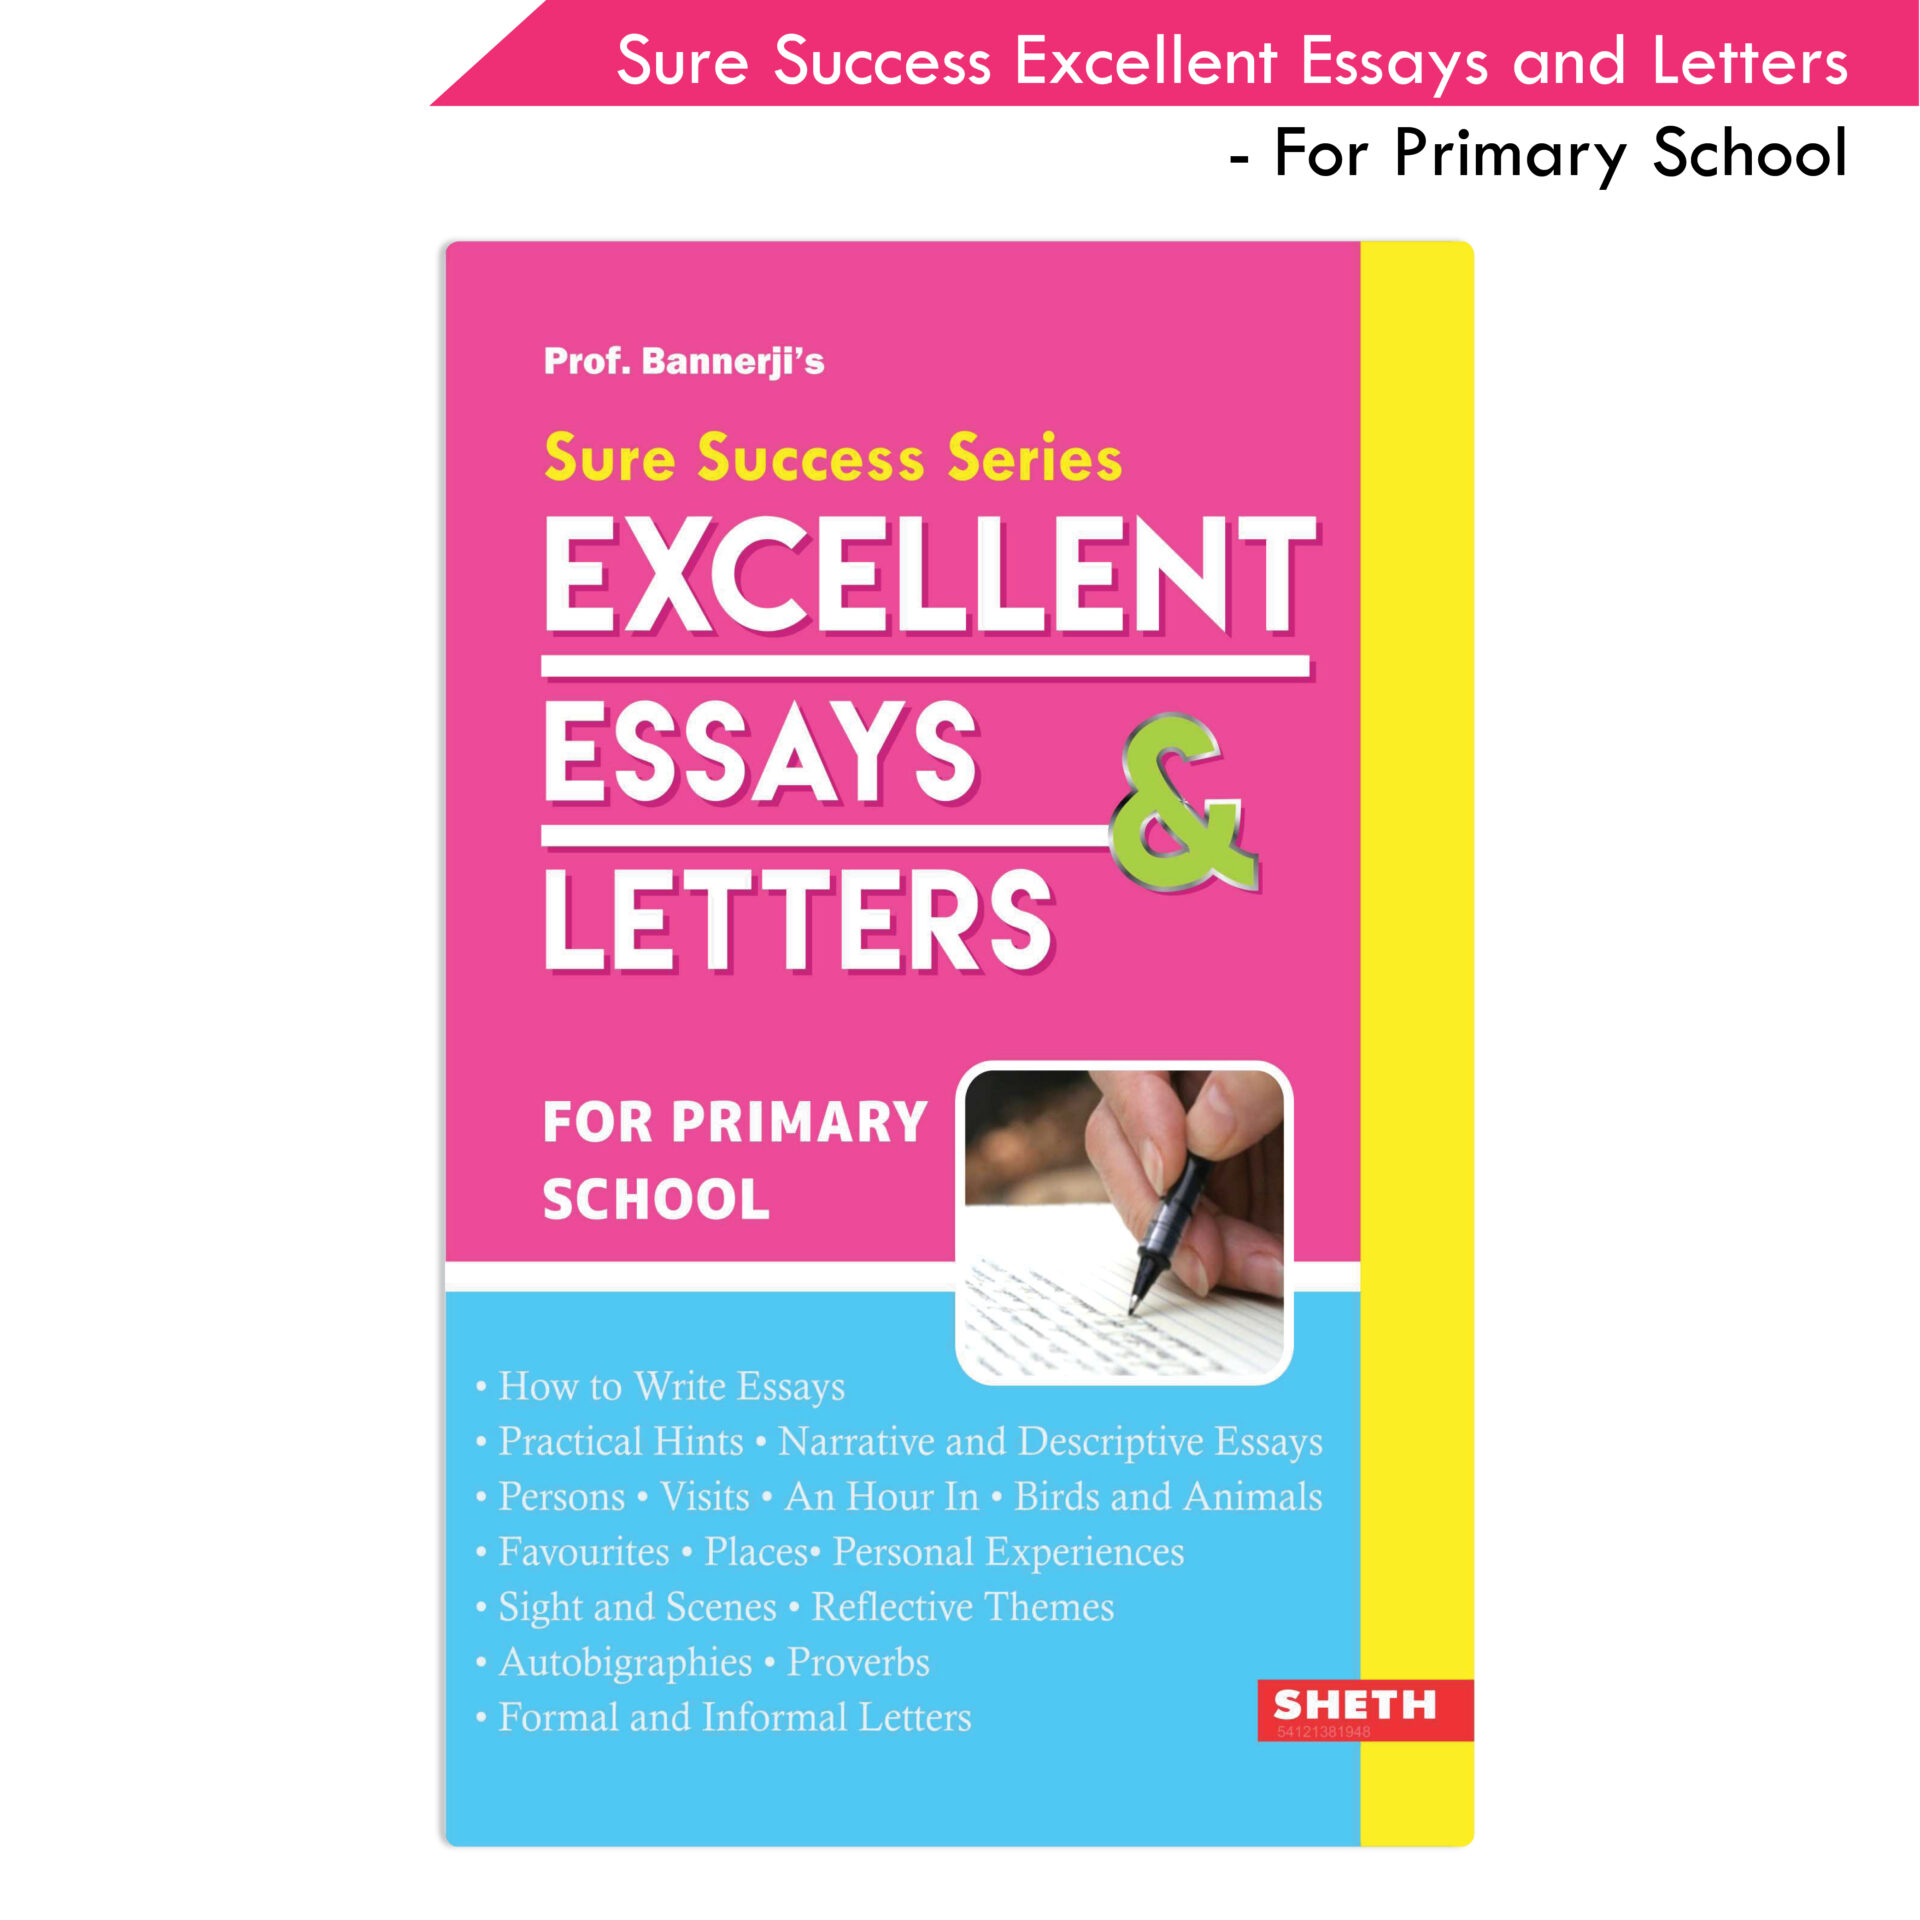 Sure Success Excellent Essays and Letters For Primary School 1